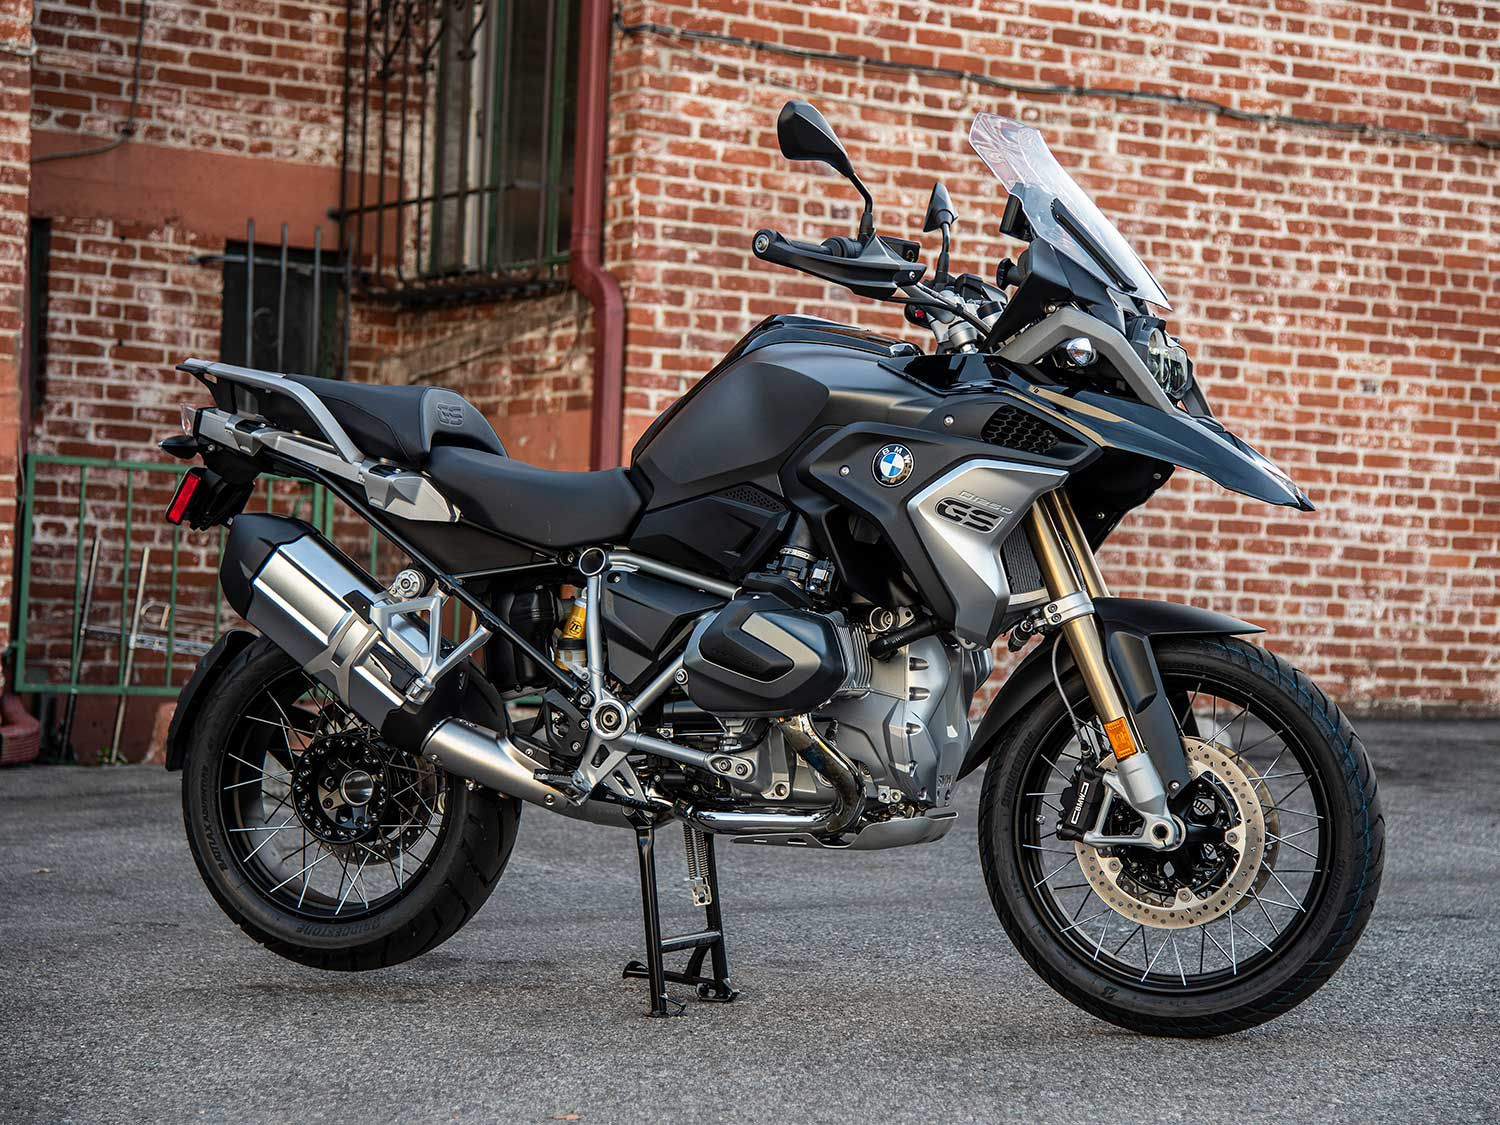 The R 1250 GS may be adventure-ready, but it's also city-capable.